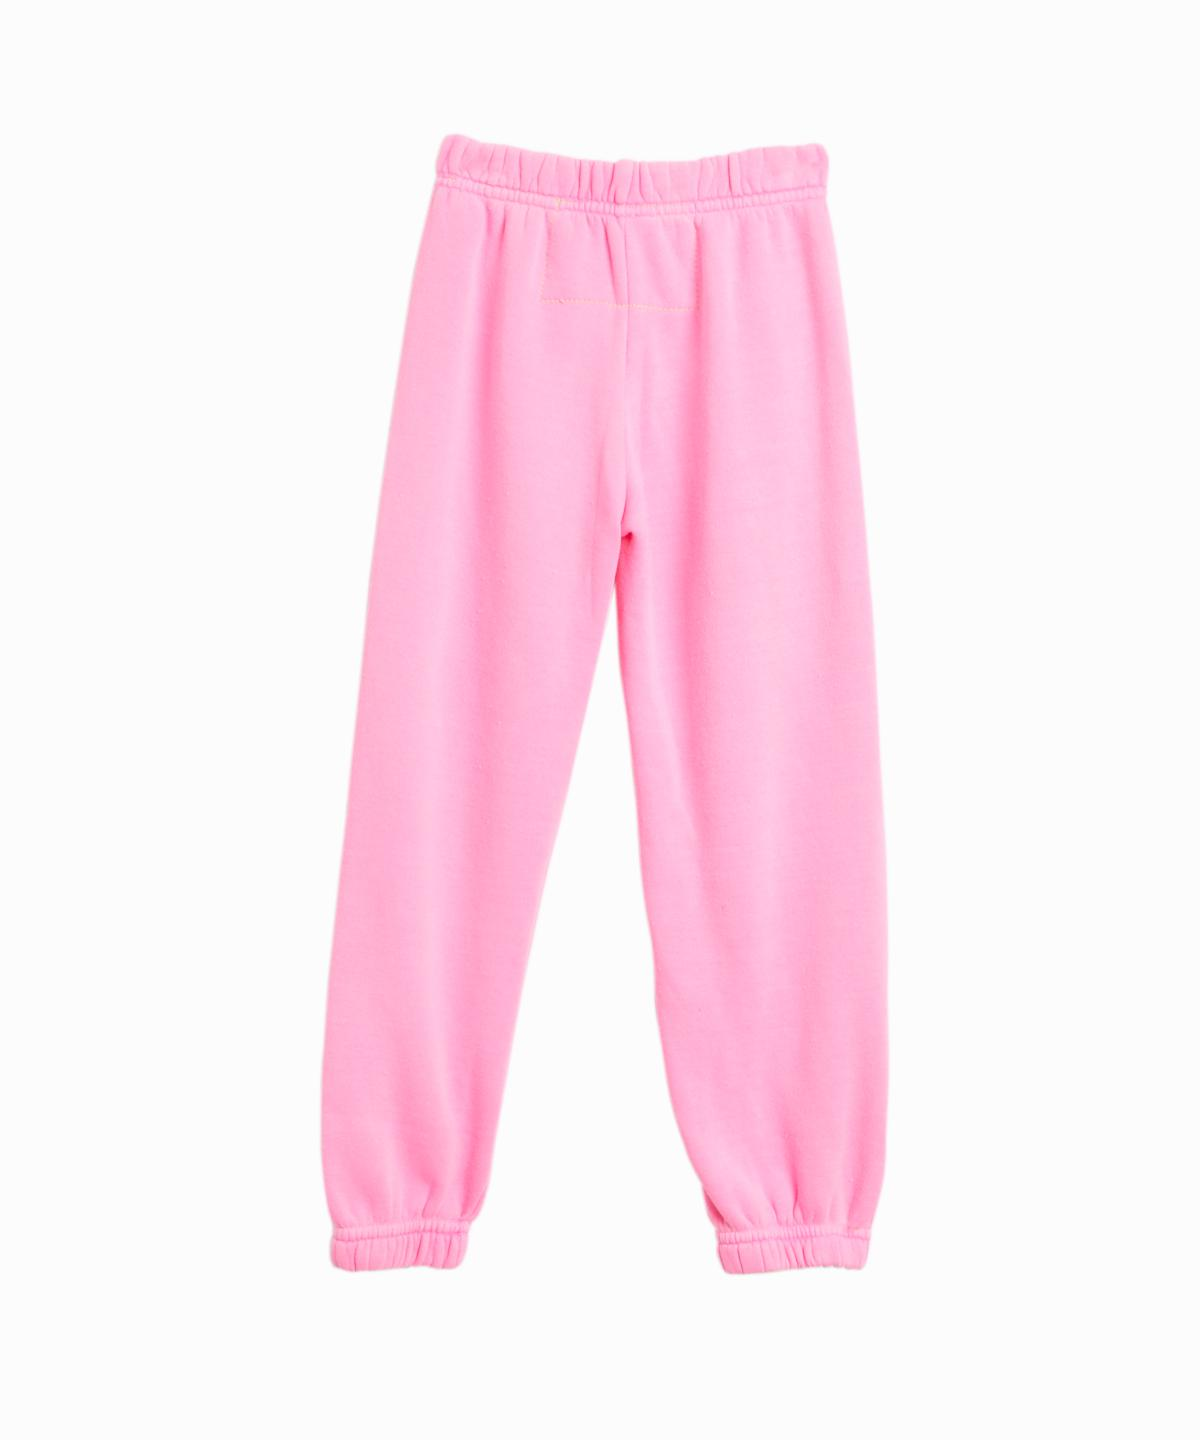 Heart Pink Sweatpants